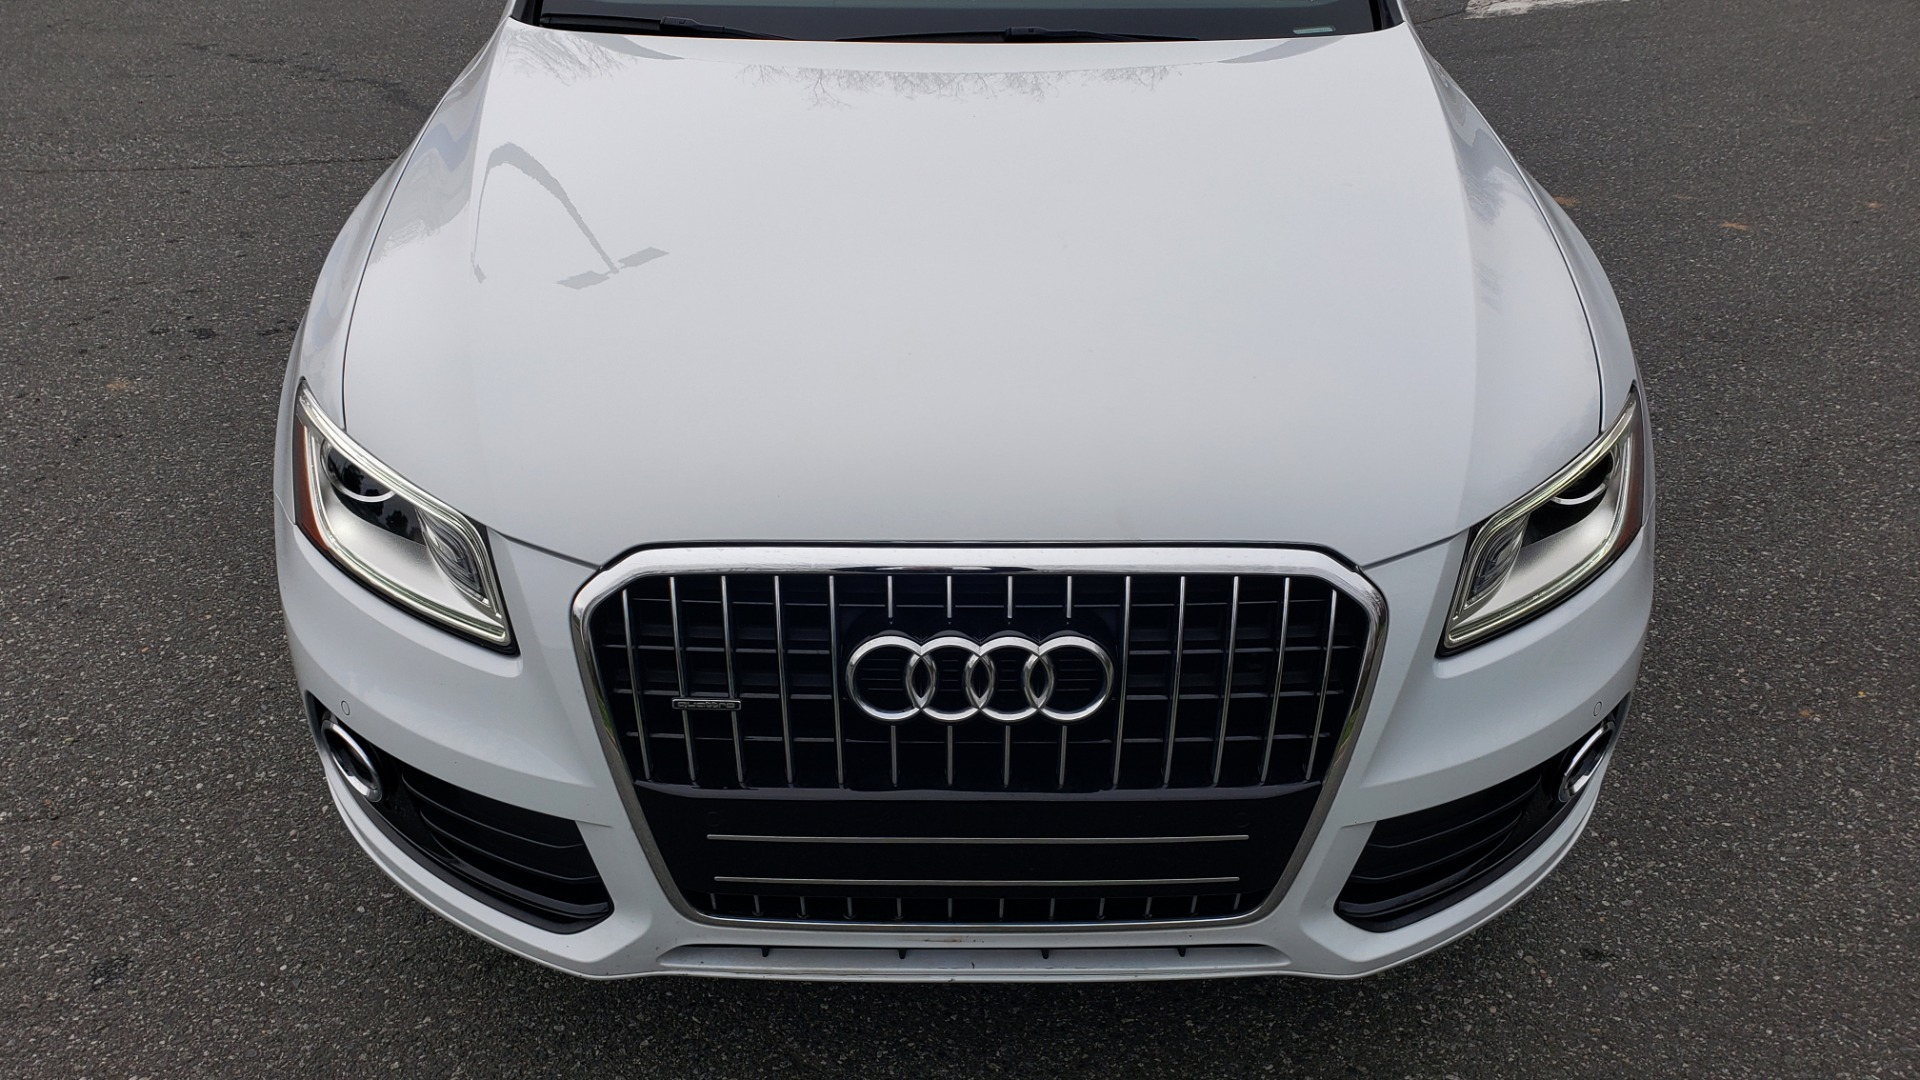 Used 2017 Audi Q5 PREMIUM PLUS / TECH / NAV / PANO-ROOF / B&O SND / REARVIEW for sale Sold at Formula Imports in Charlotte NC 28227 16